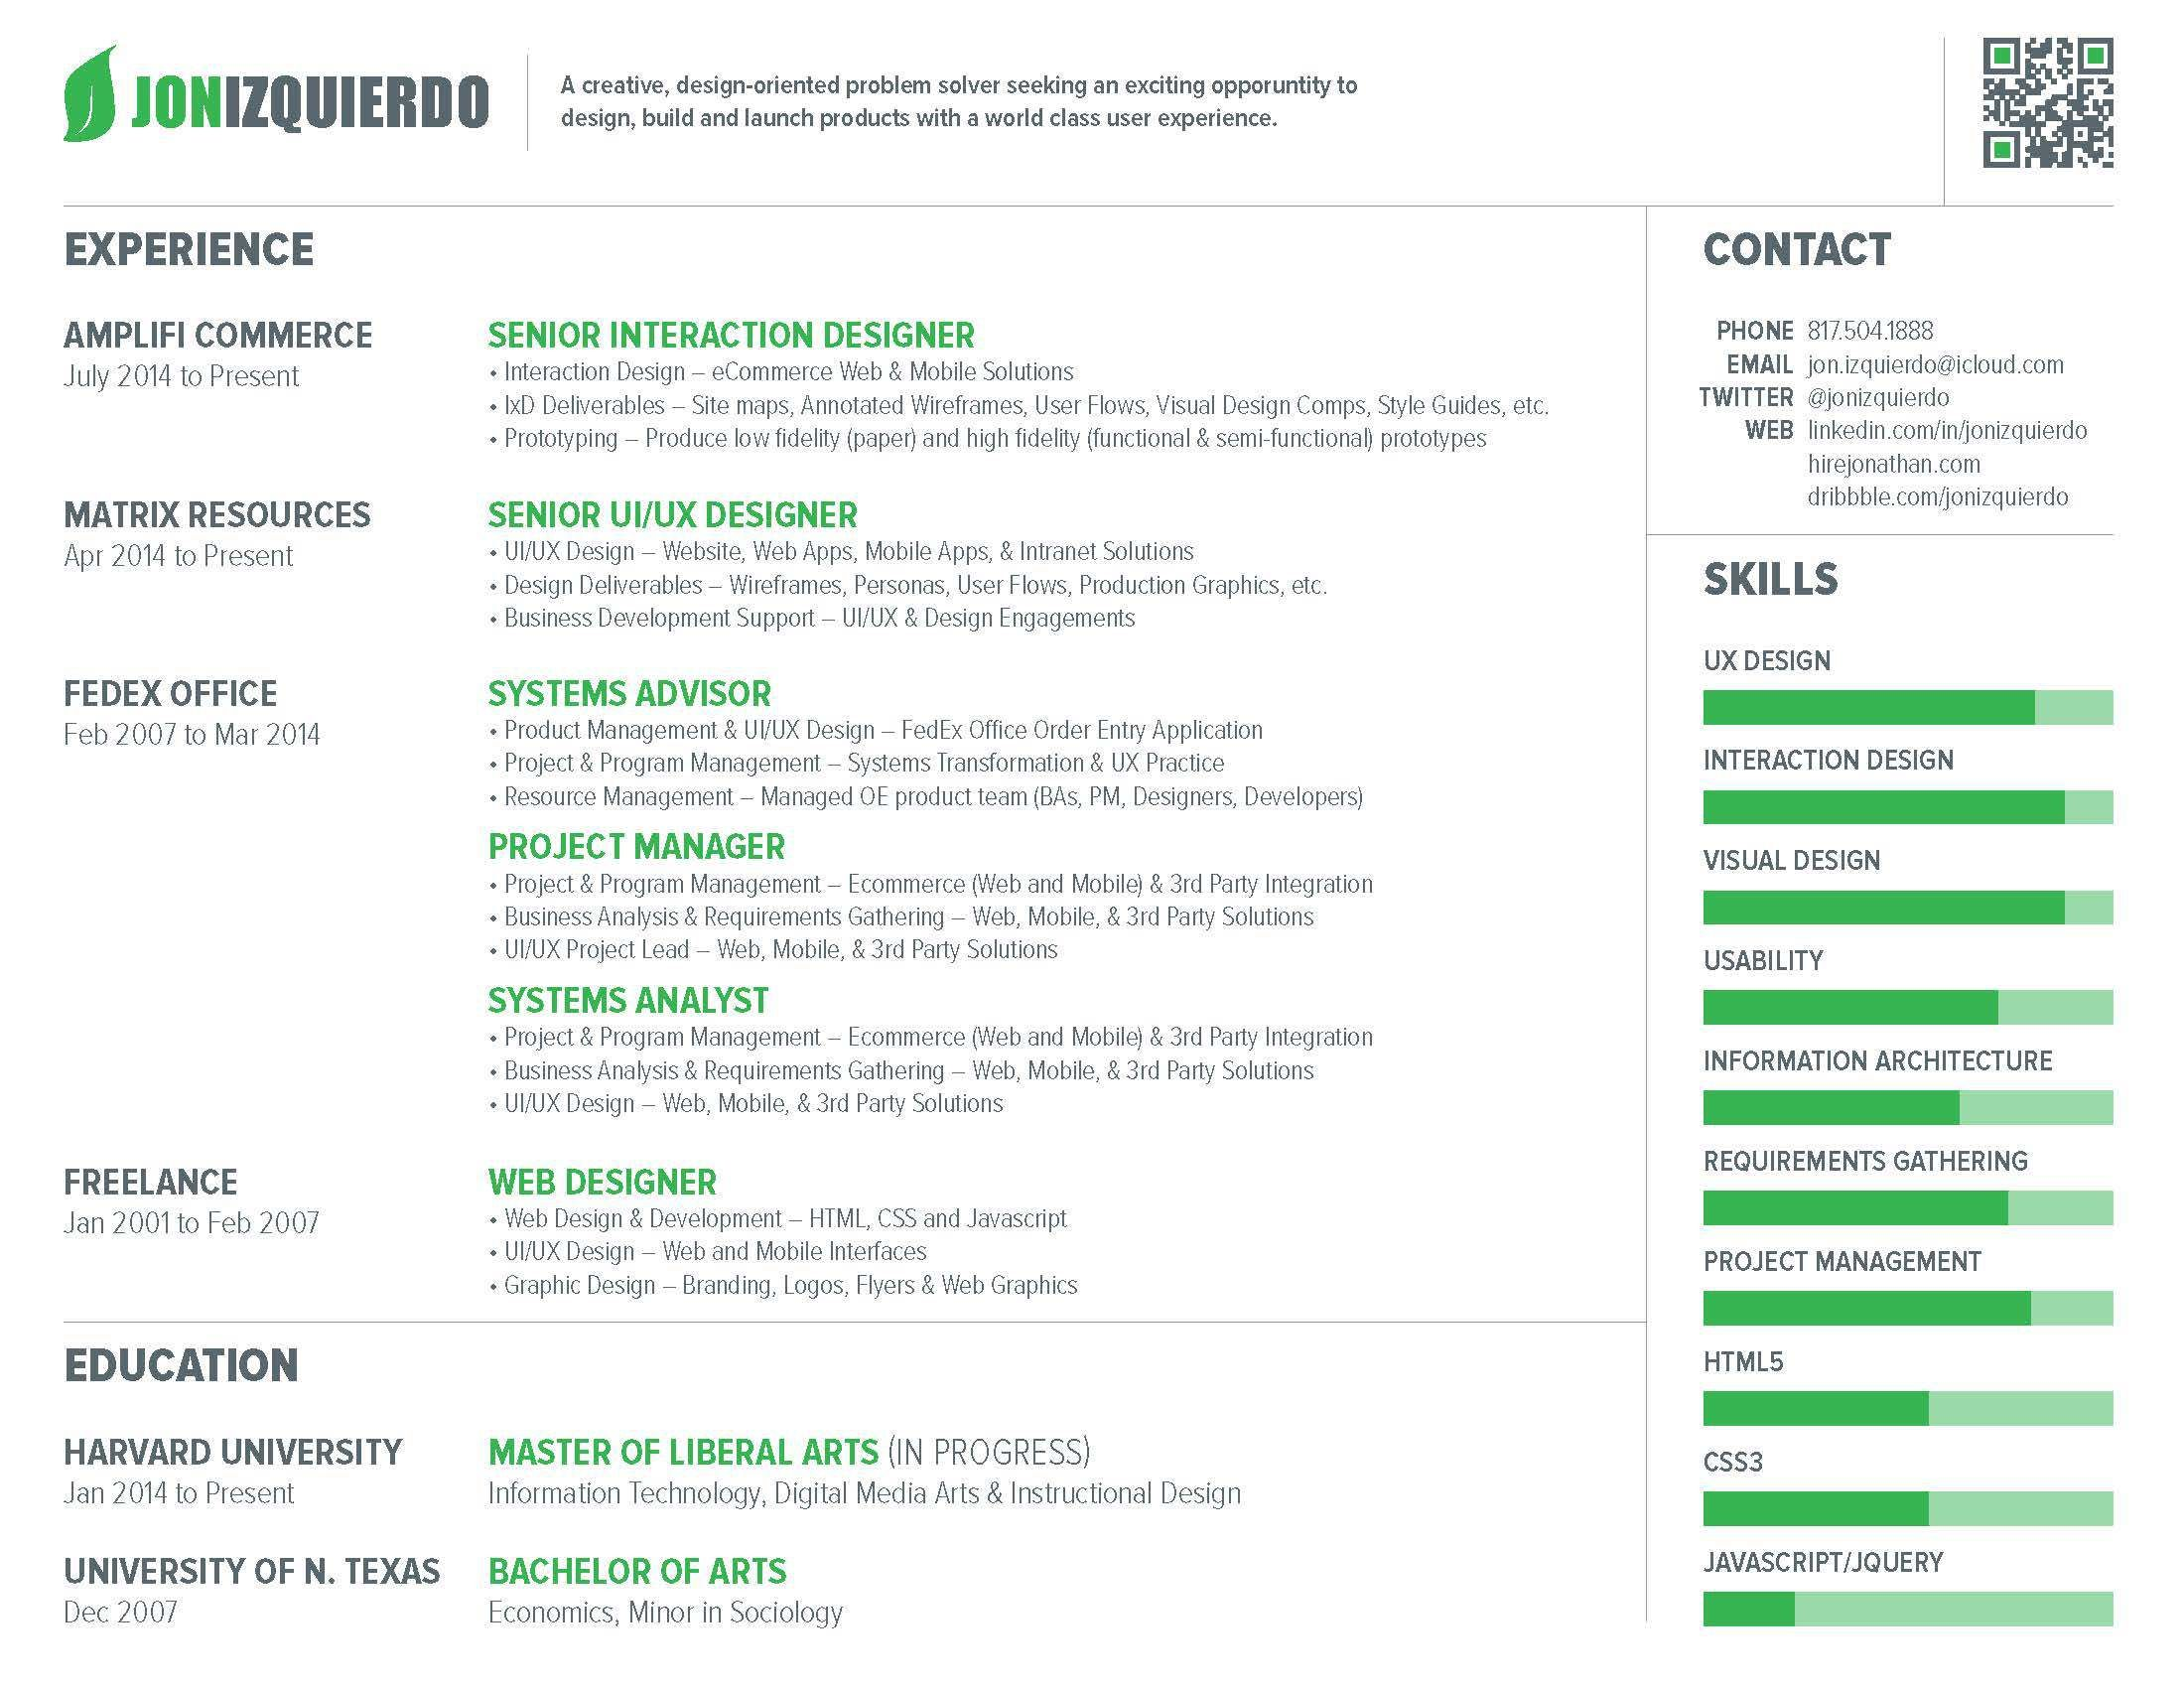 ux designer resume how to make your resume stand out jon izquierdo